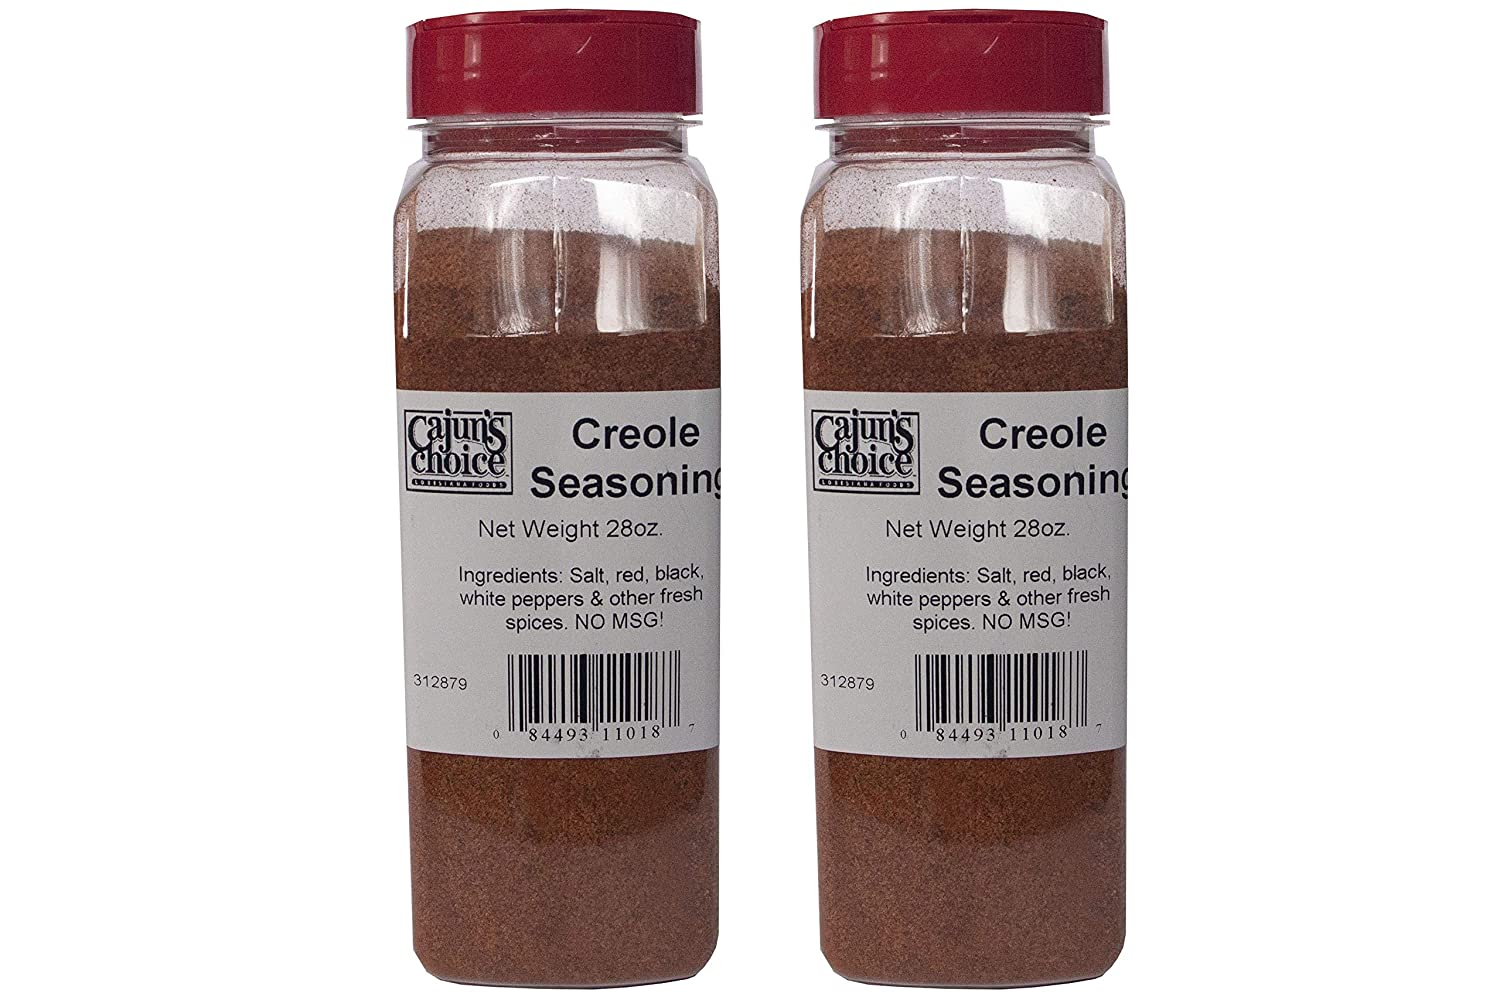 Outlet SALE Creole Seasoning 28 oz Cajun's OFFicial mail order Pack Foods Louisiana 2 Choice